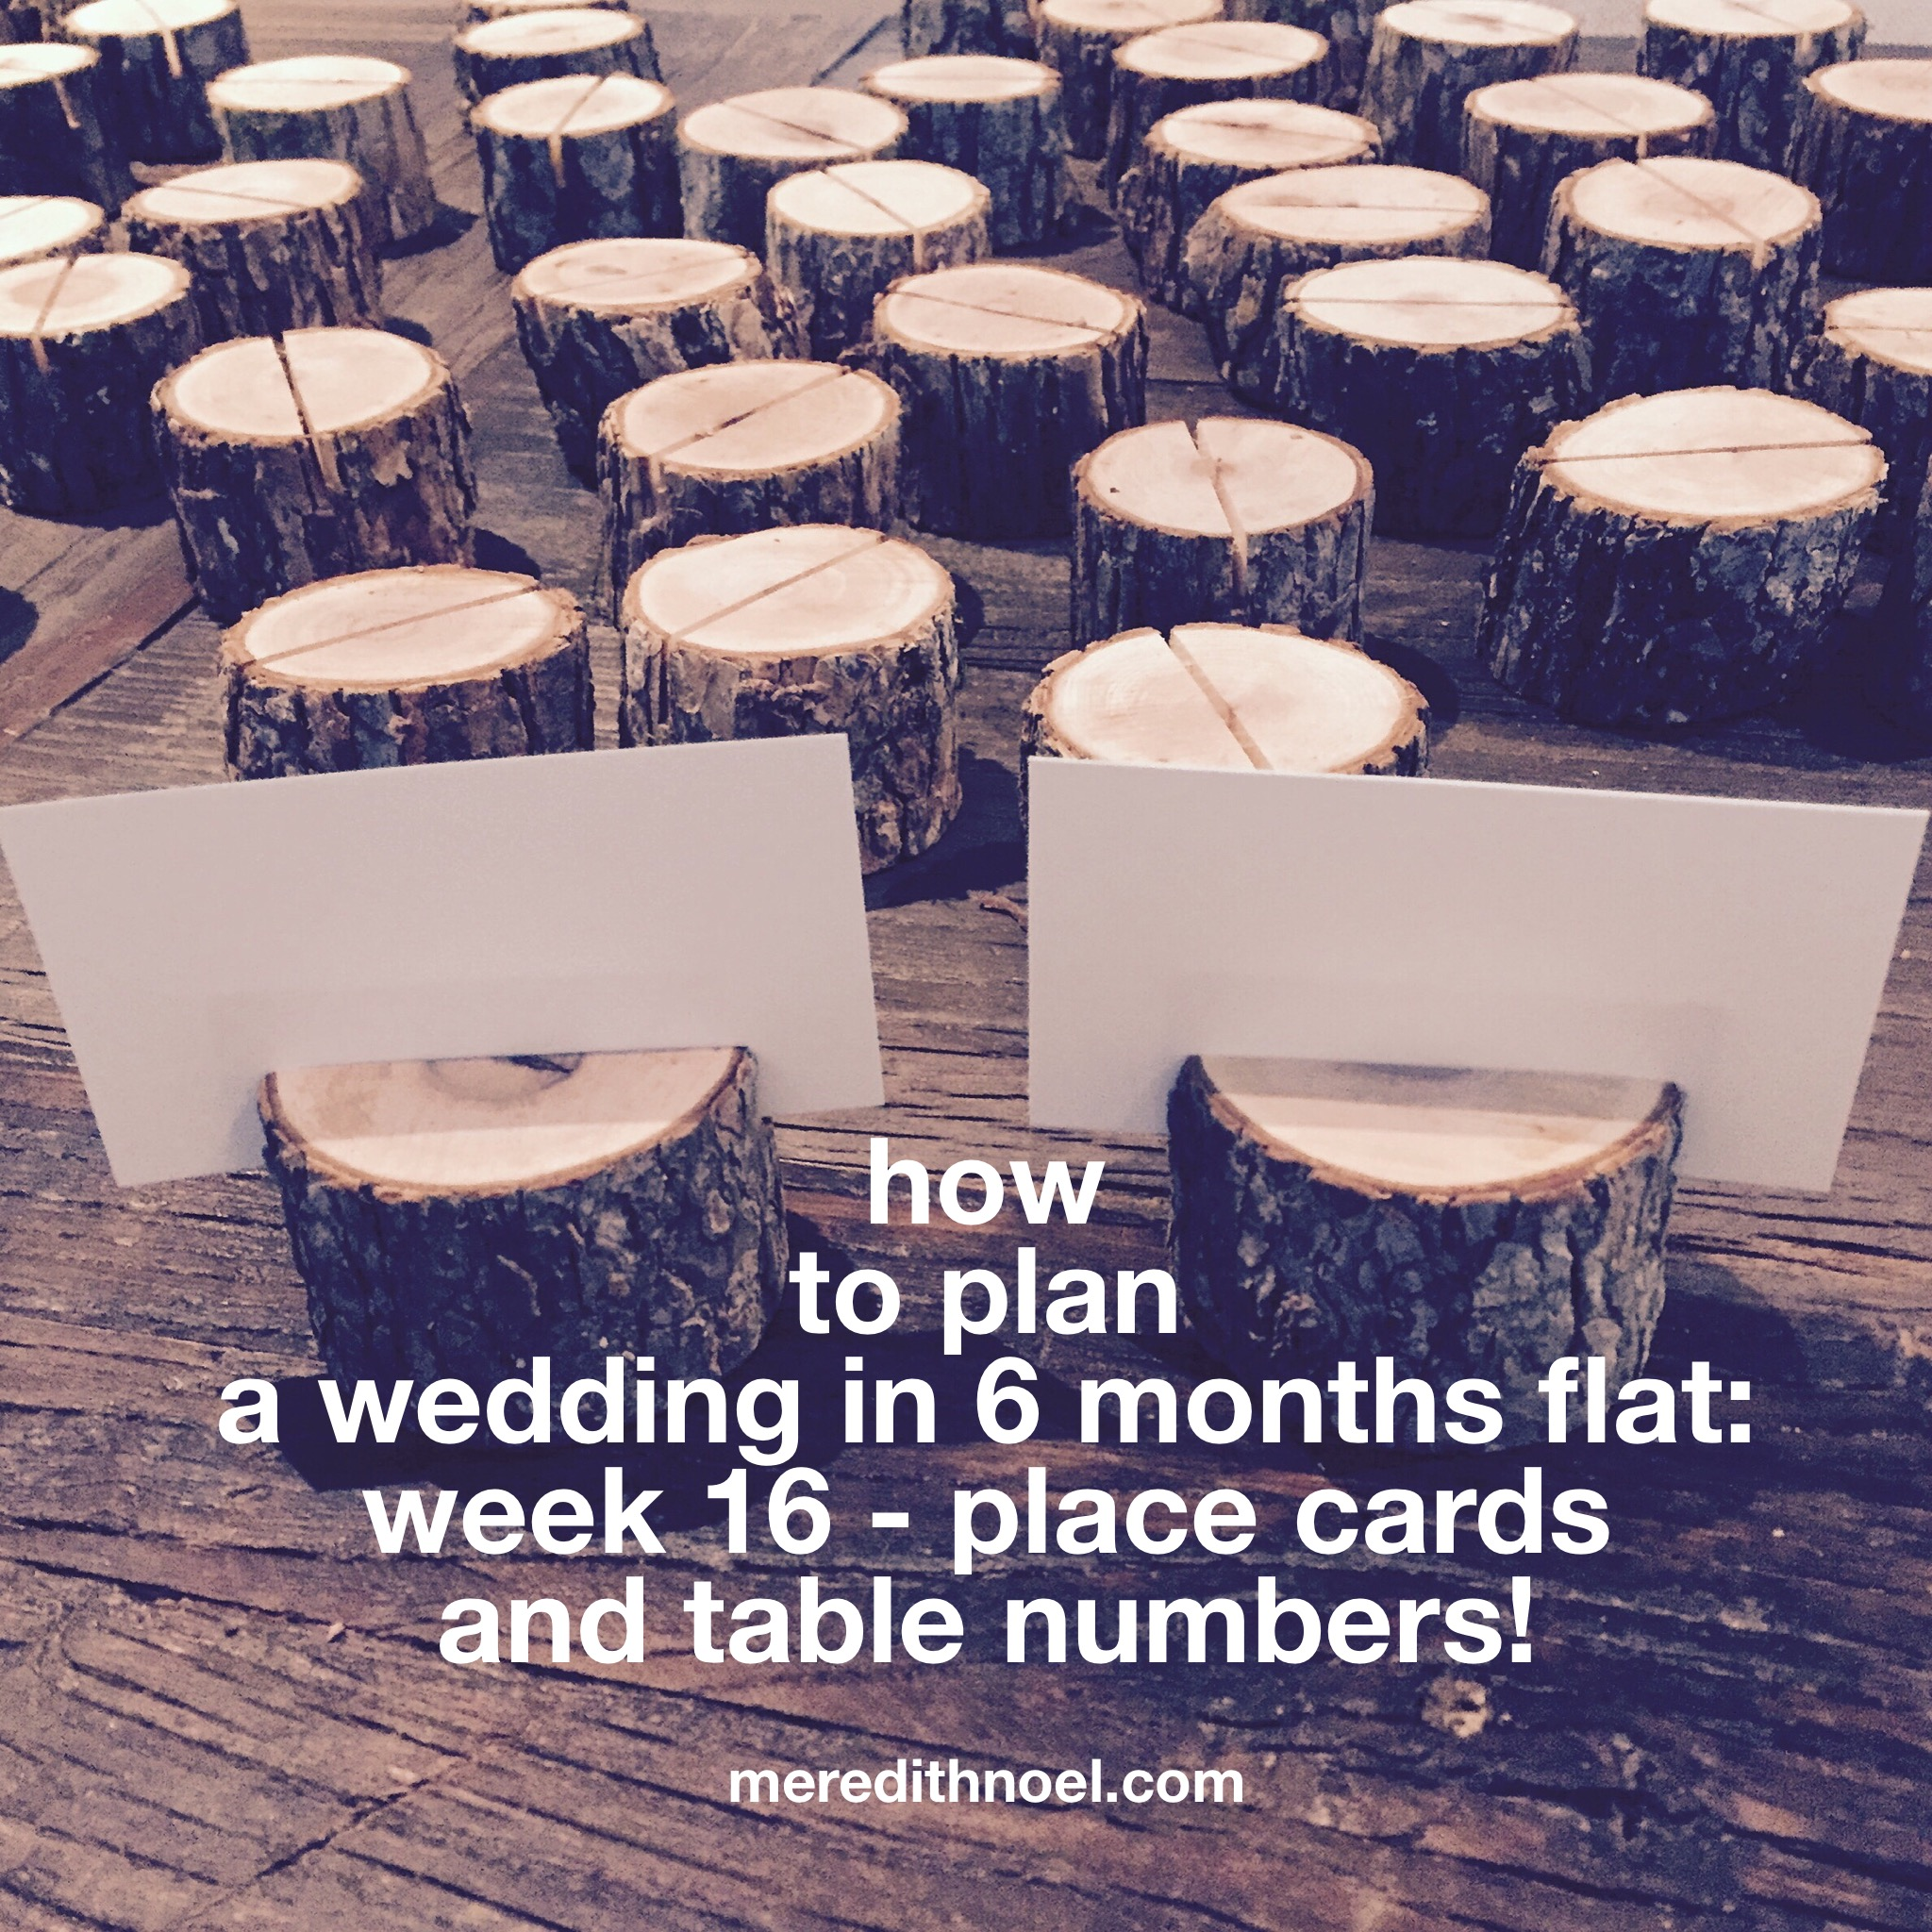 How To Plan A Wedding In 6 Months Flat: Week 16